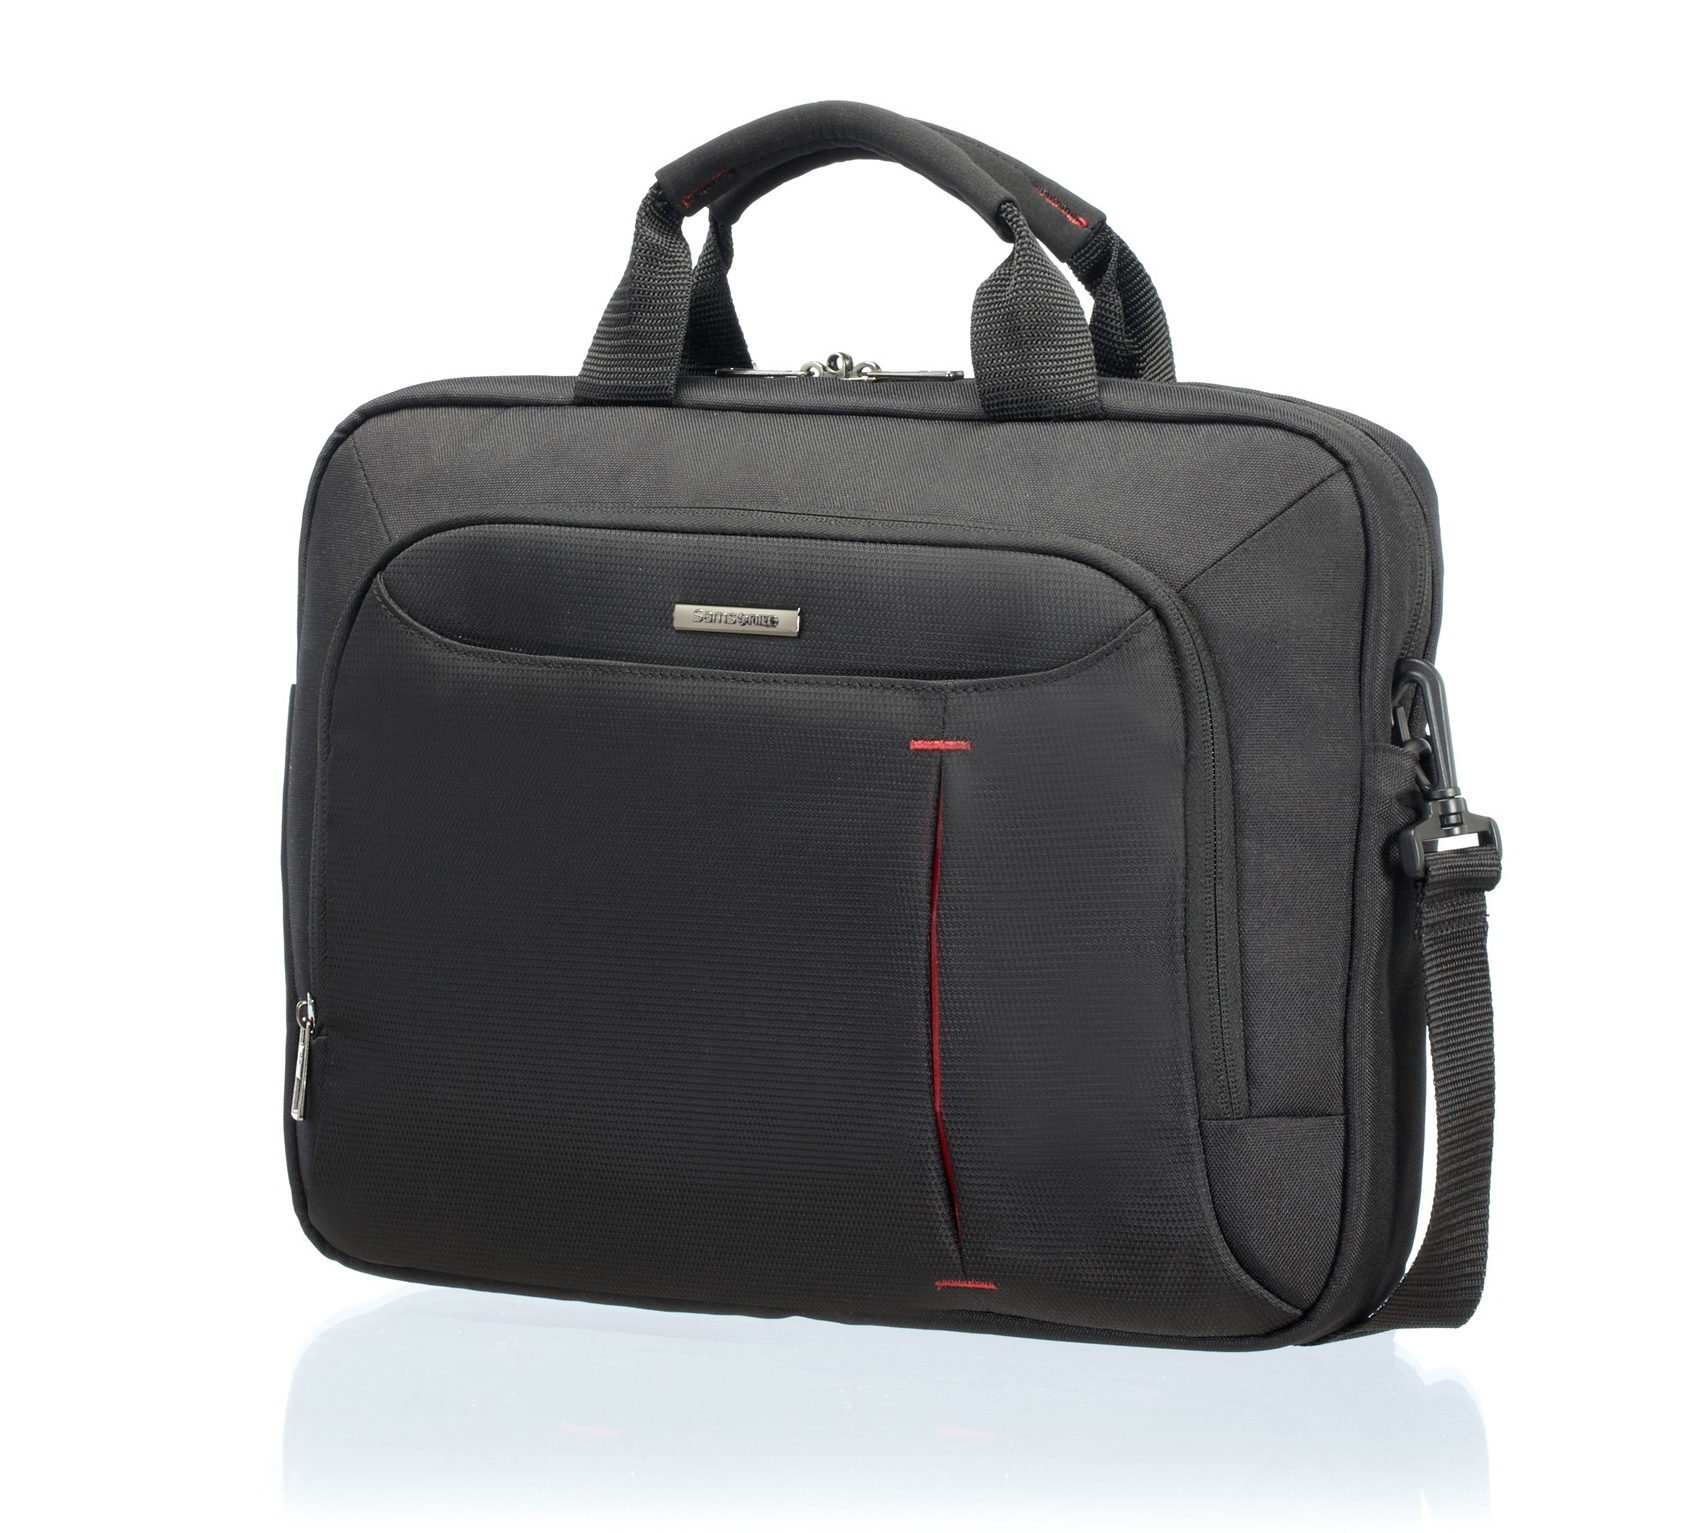 SAMSONITE - BORSE NOTEBOOK - 5414847411403